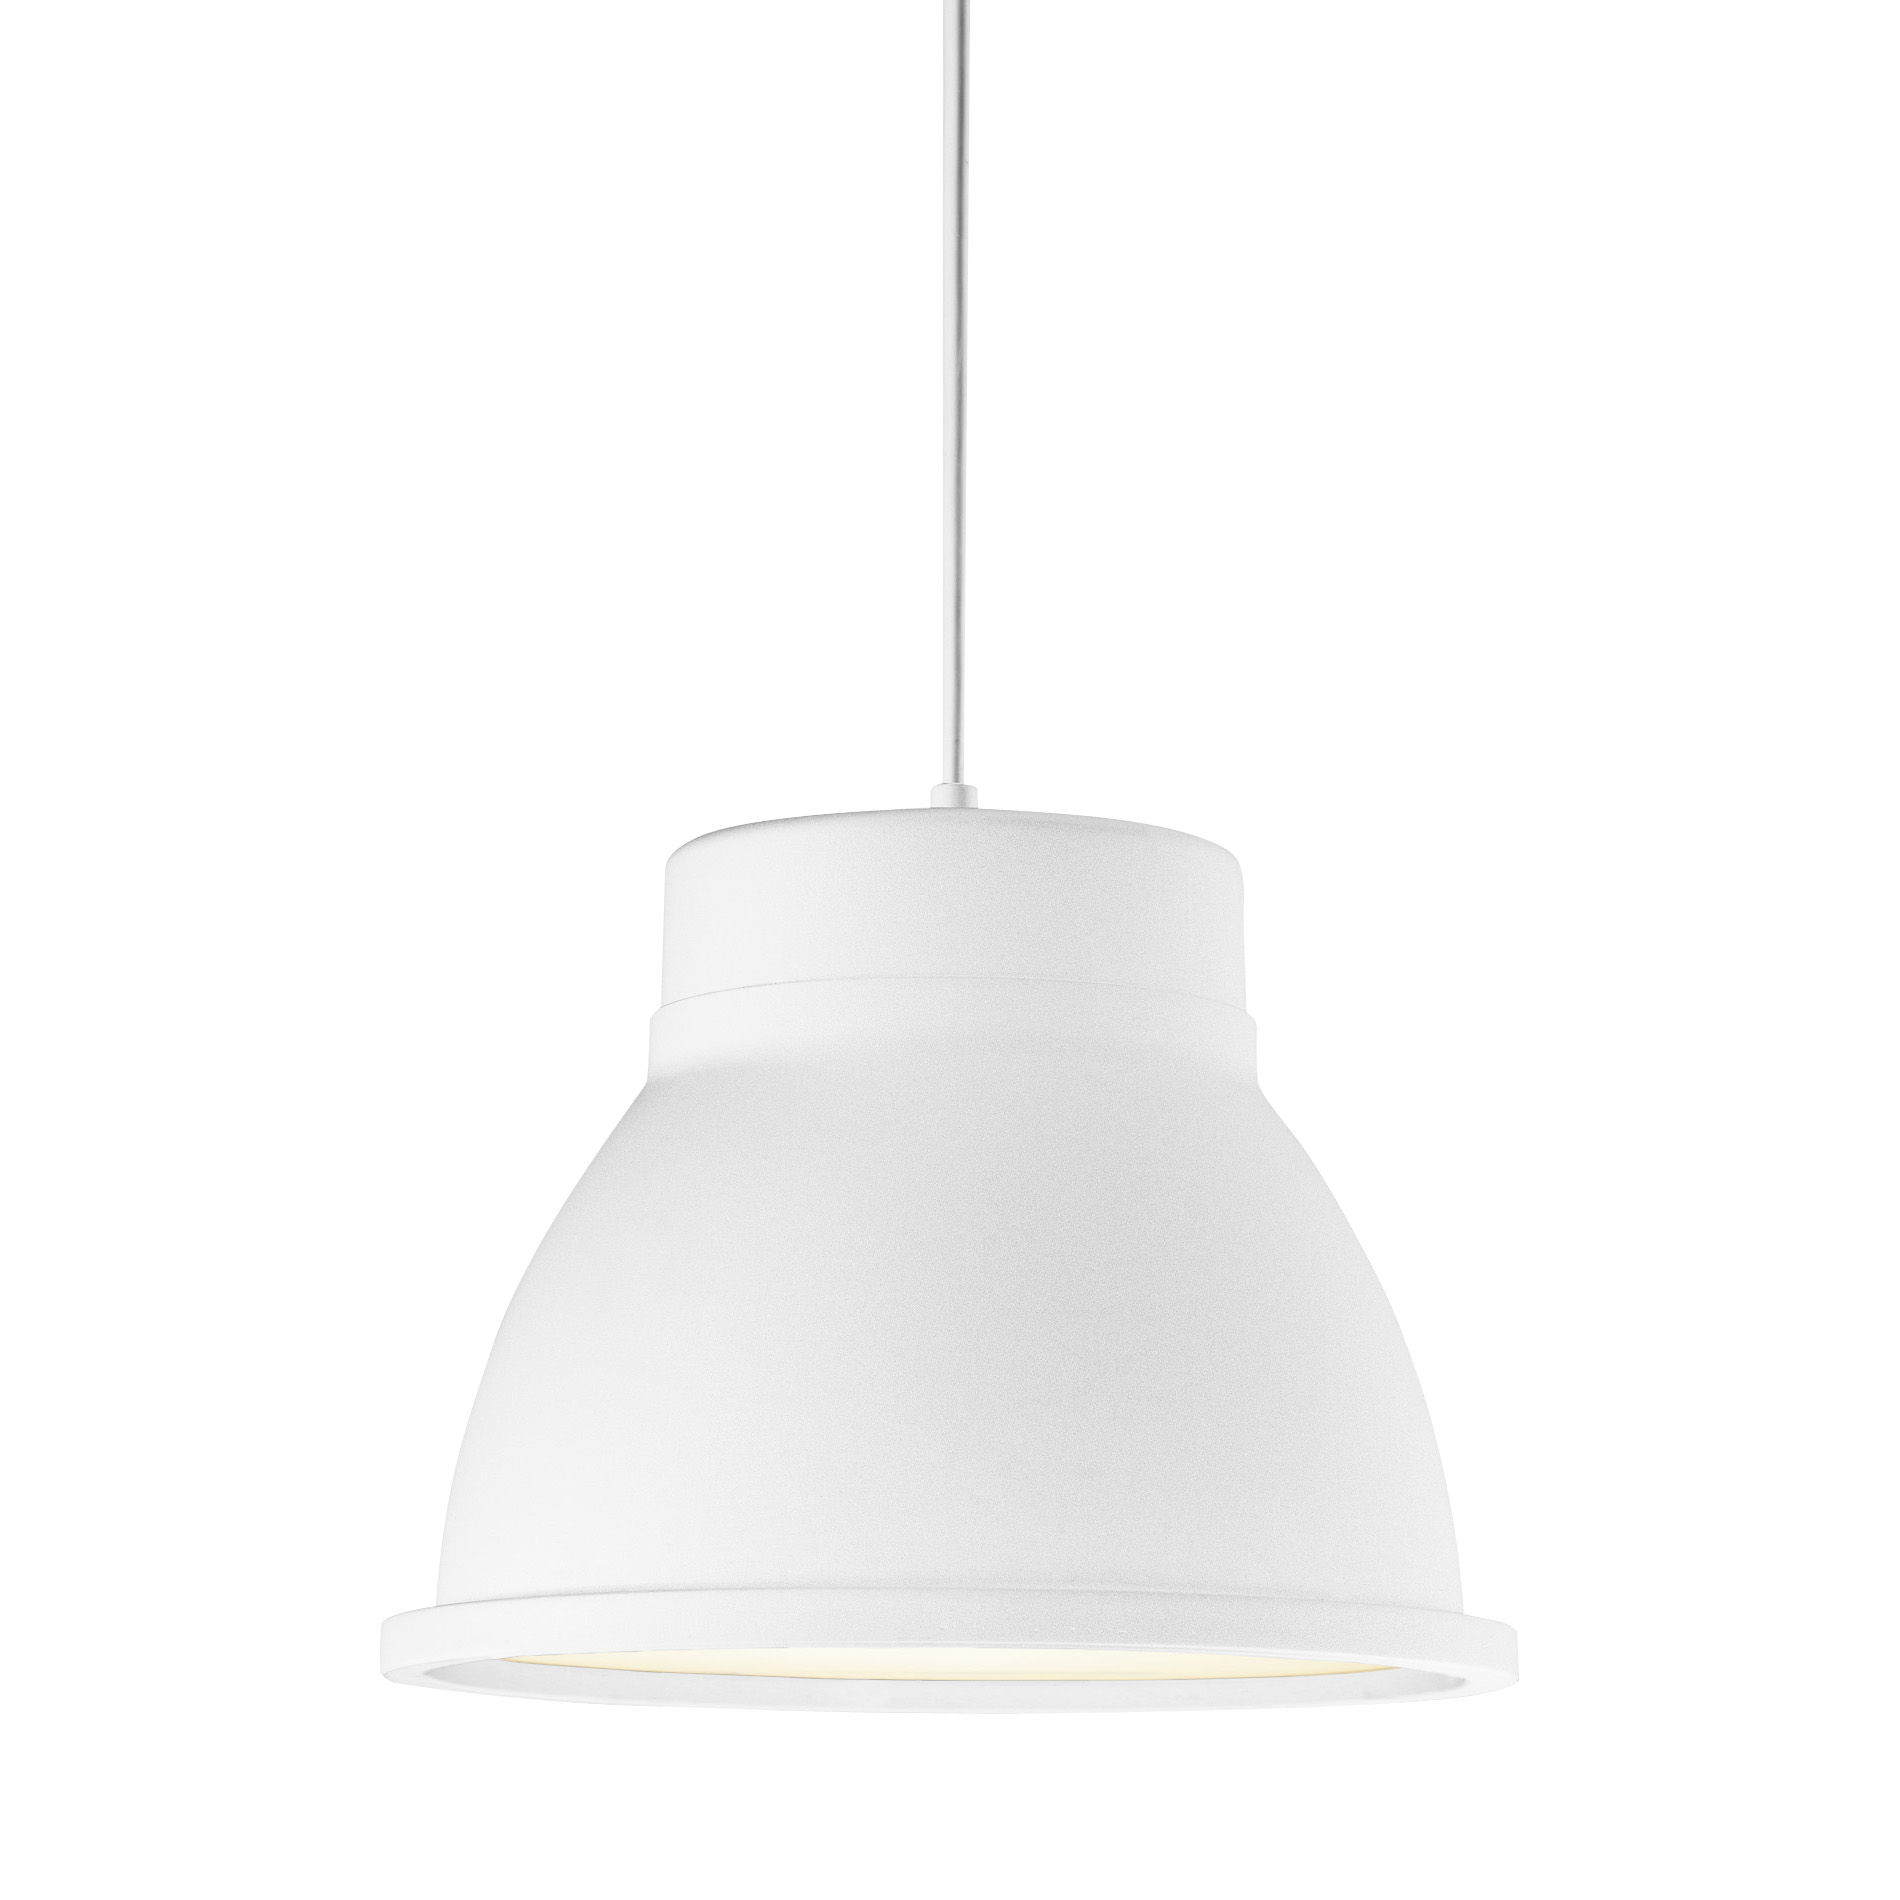 studio pendant suspension white by muuto. Black Bedroom Furniture Sets. Home Design Ideas